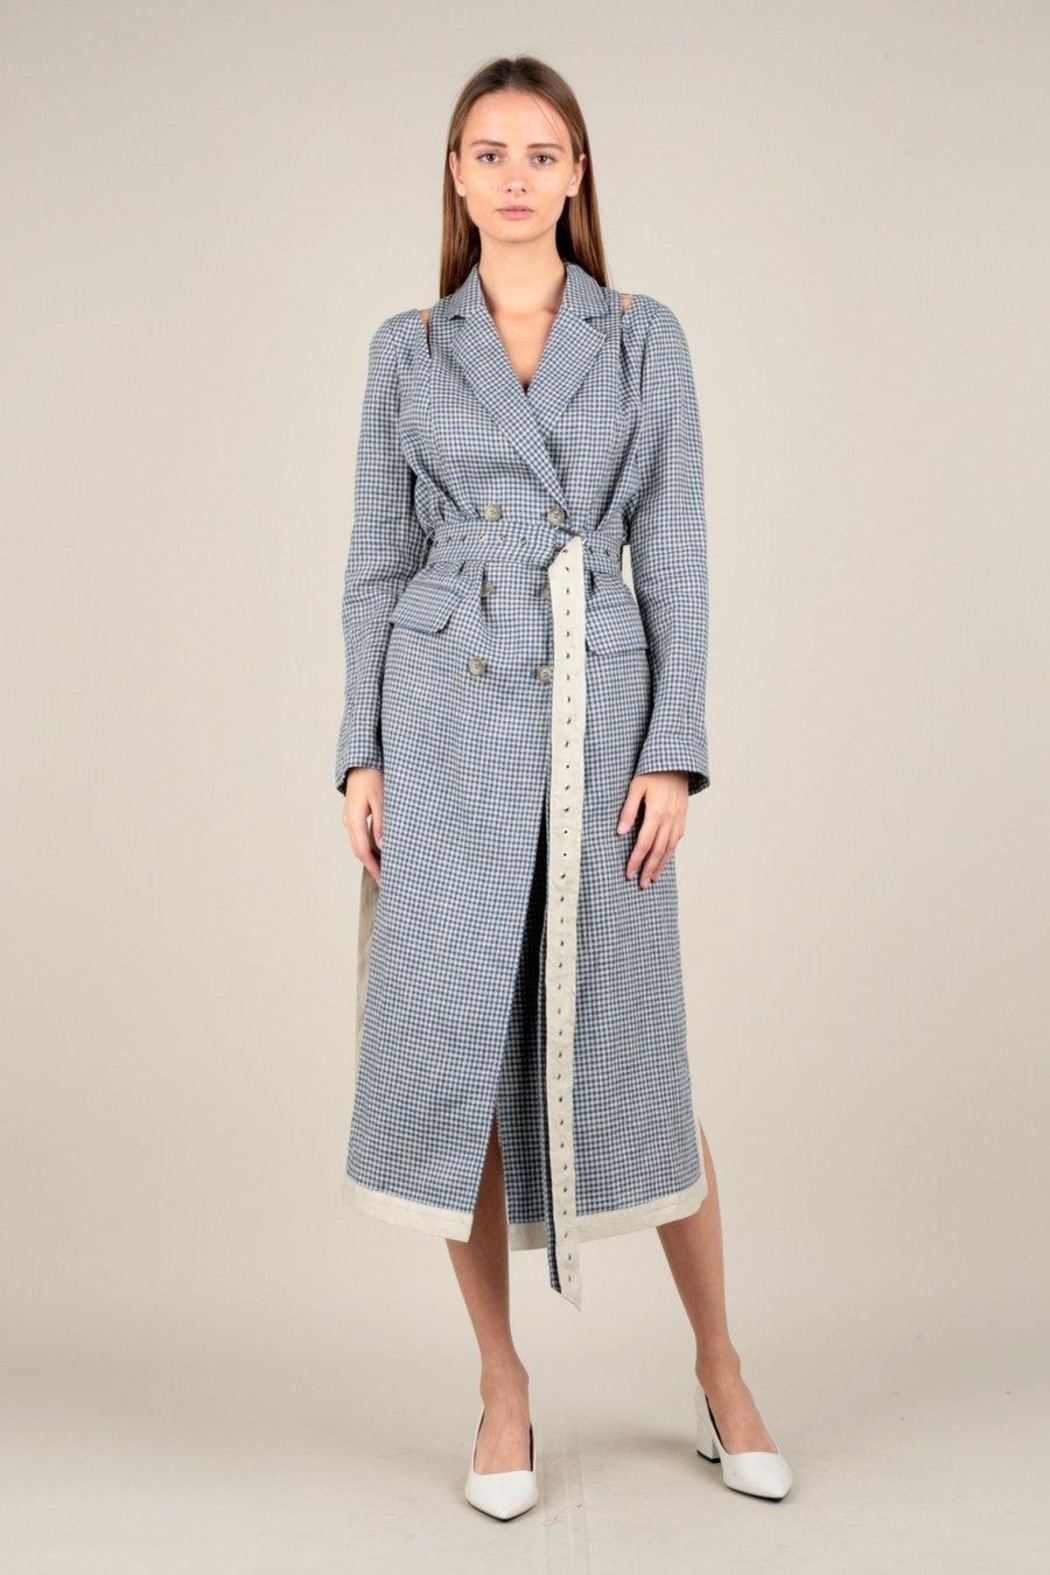 Current Air Gingham Trench Coat - Main Image